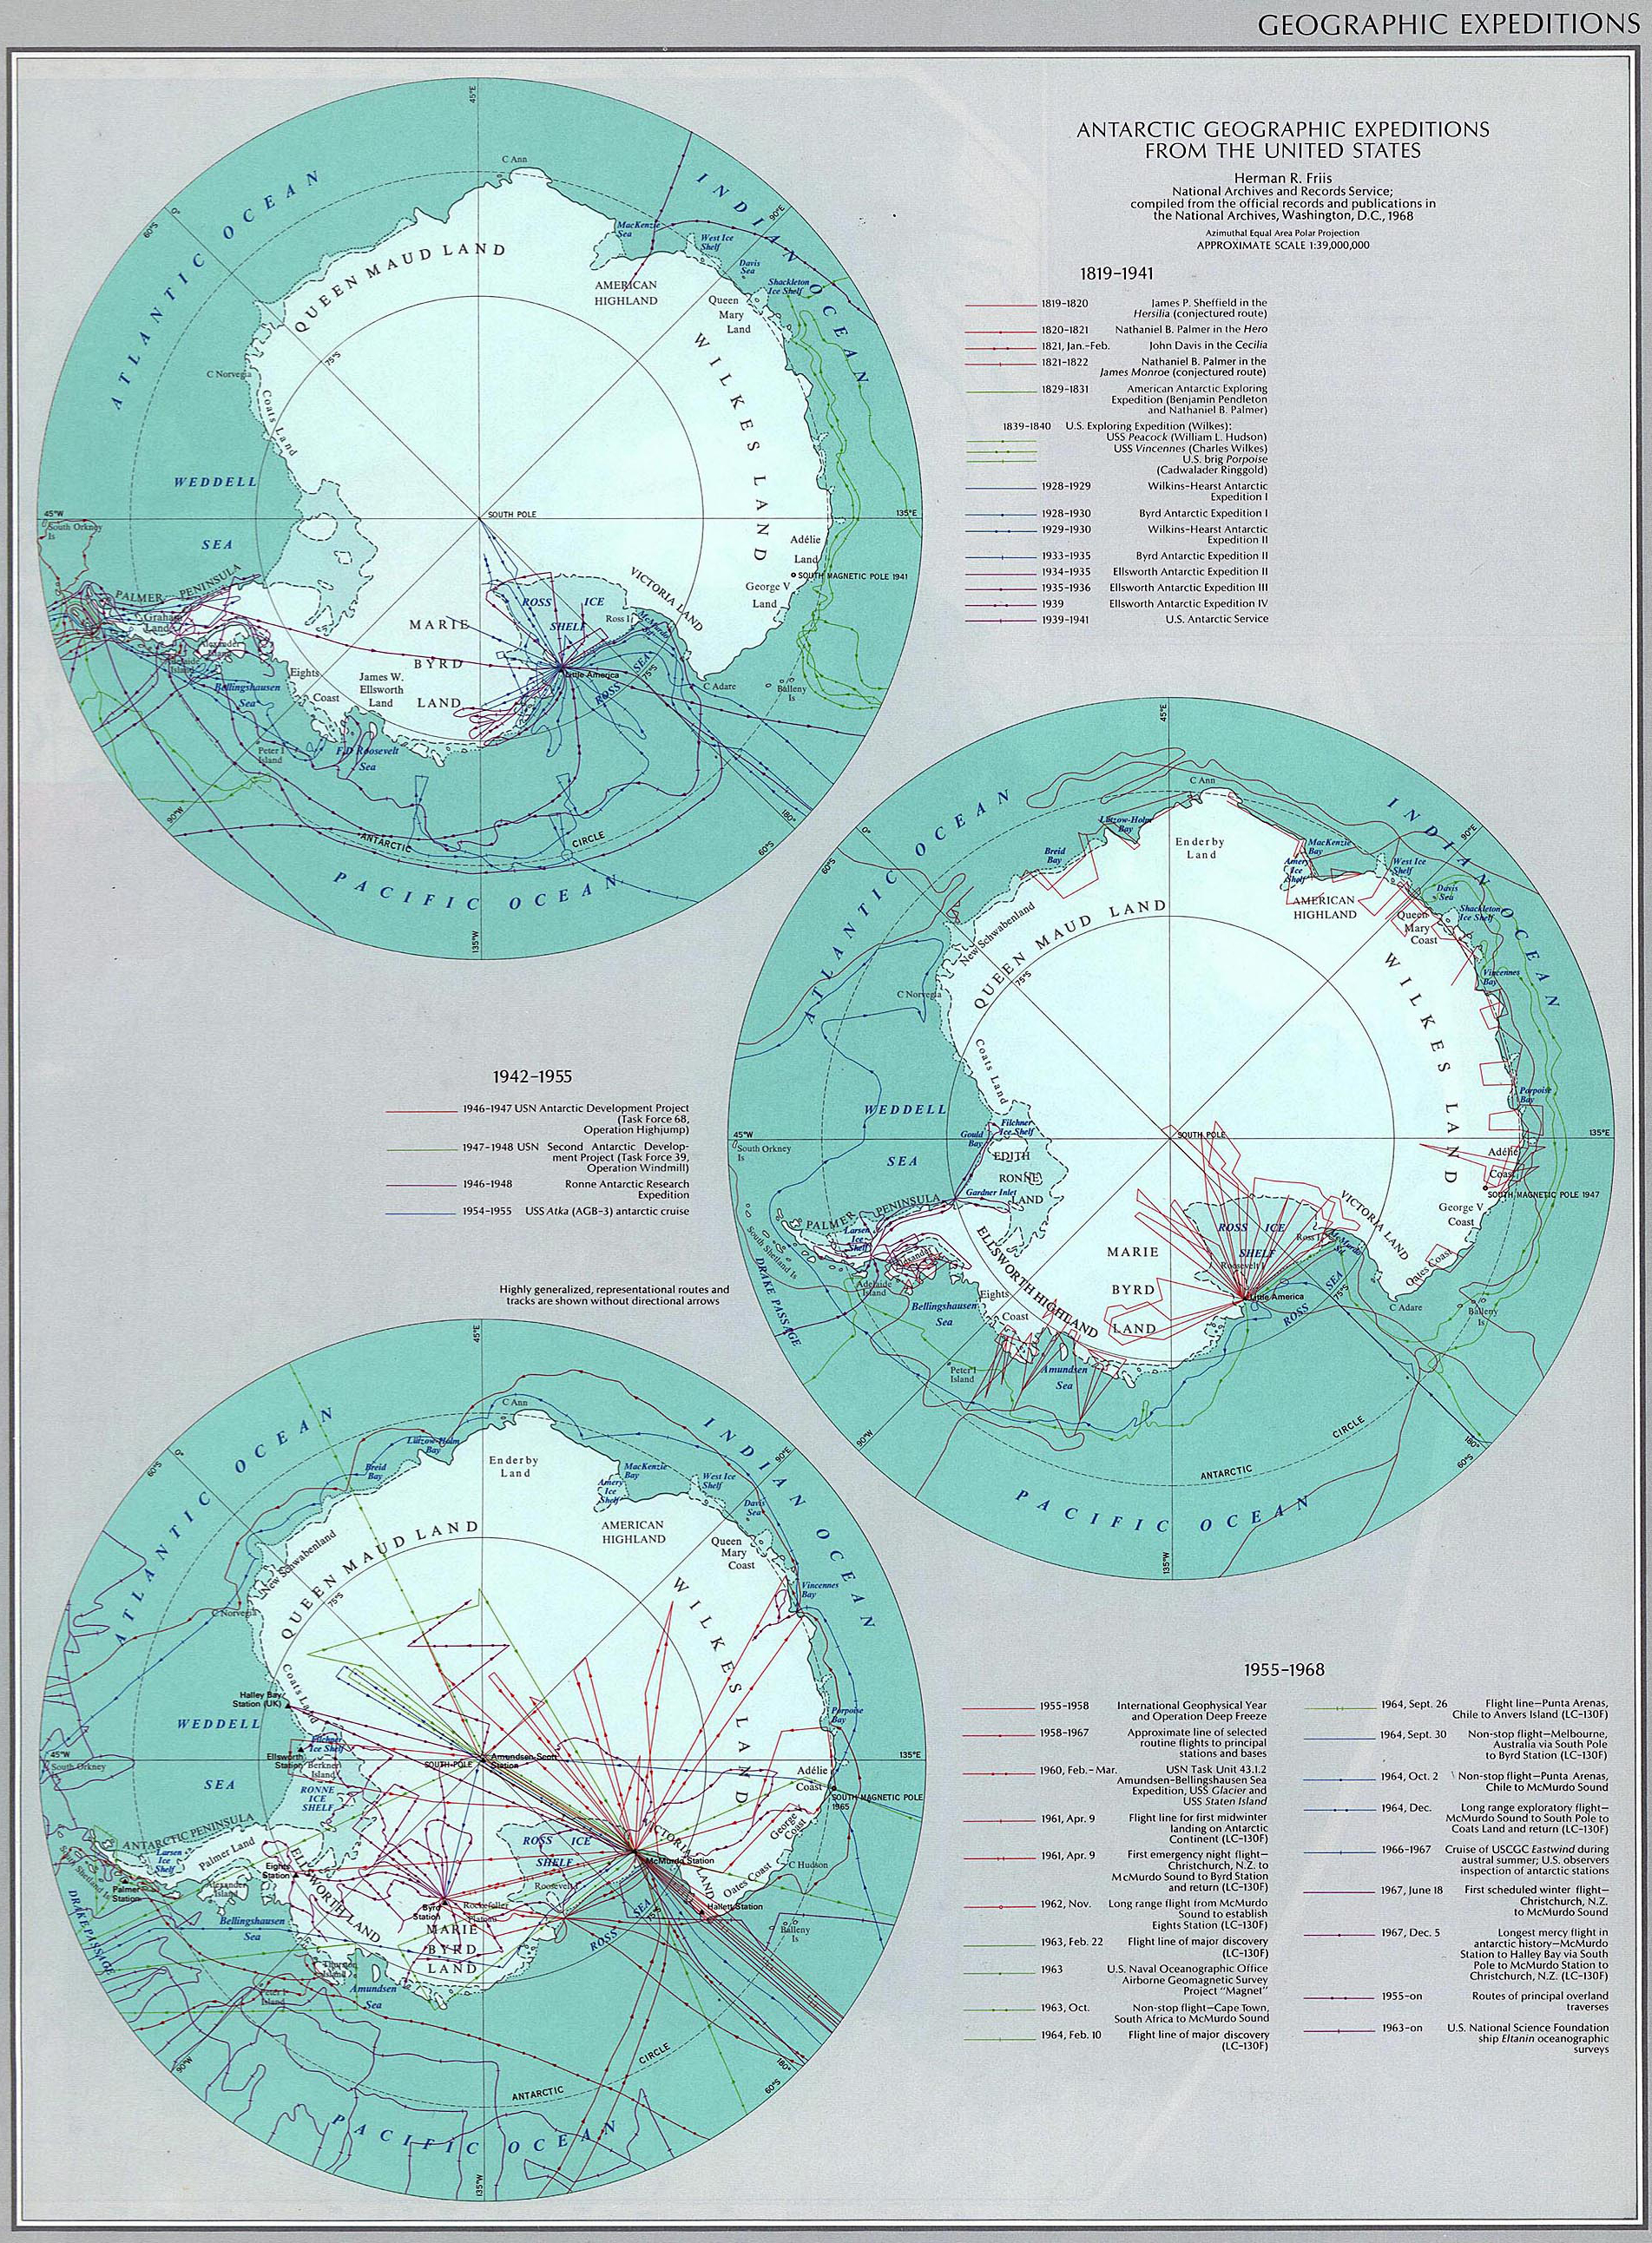 Map of Antarctic Geographic Expeditions From the United States